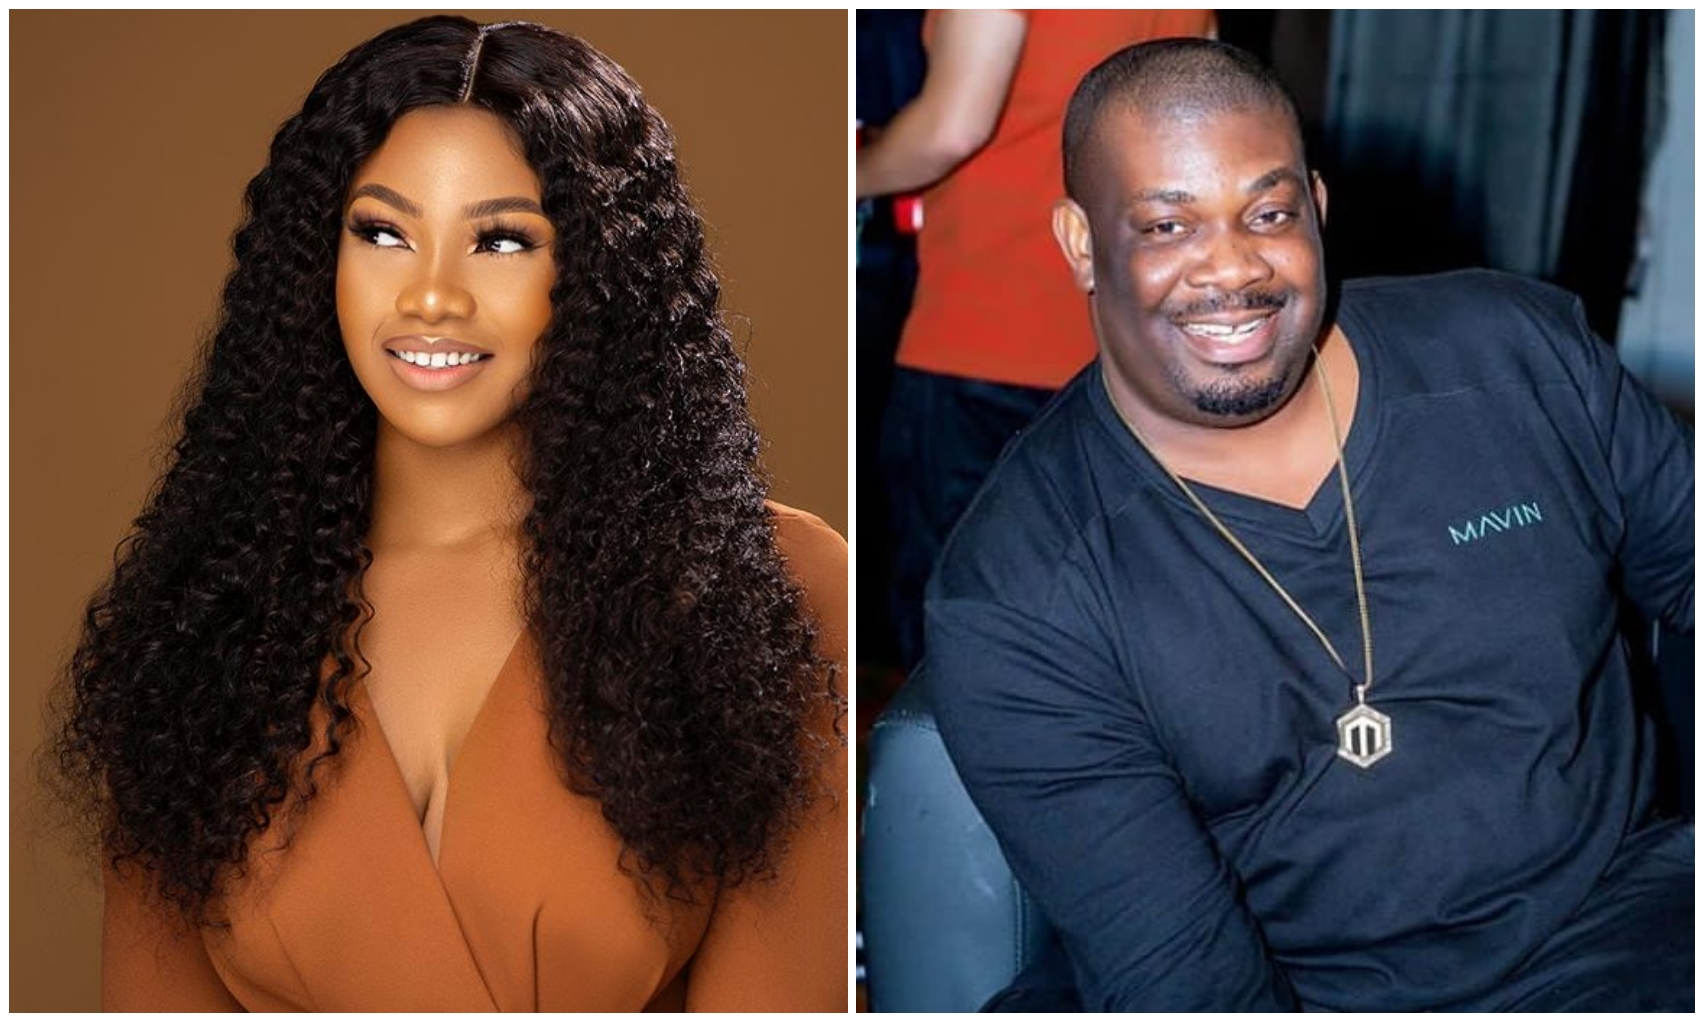 #BBNaijaReunion: Tacha reveals how excited she was when she saw Don Jazzy